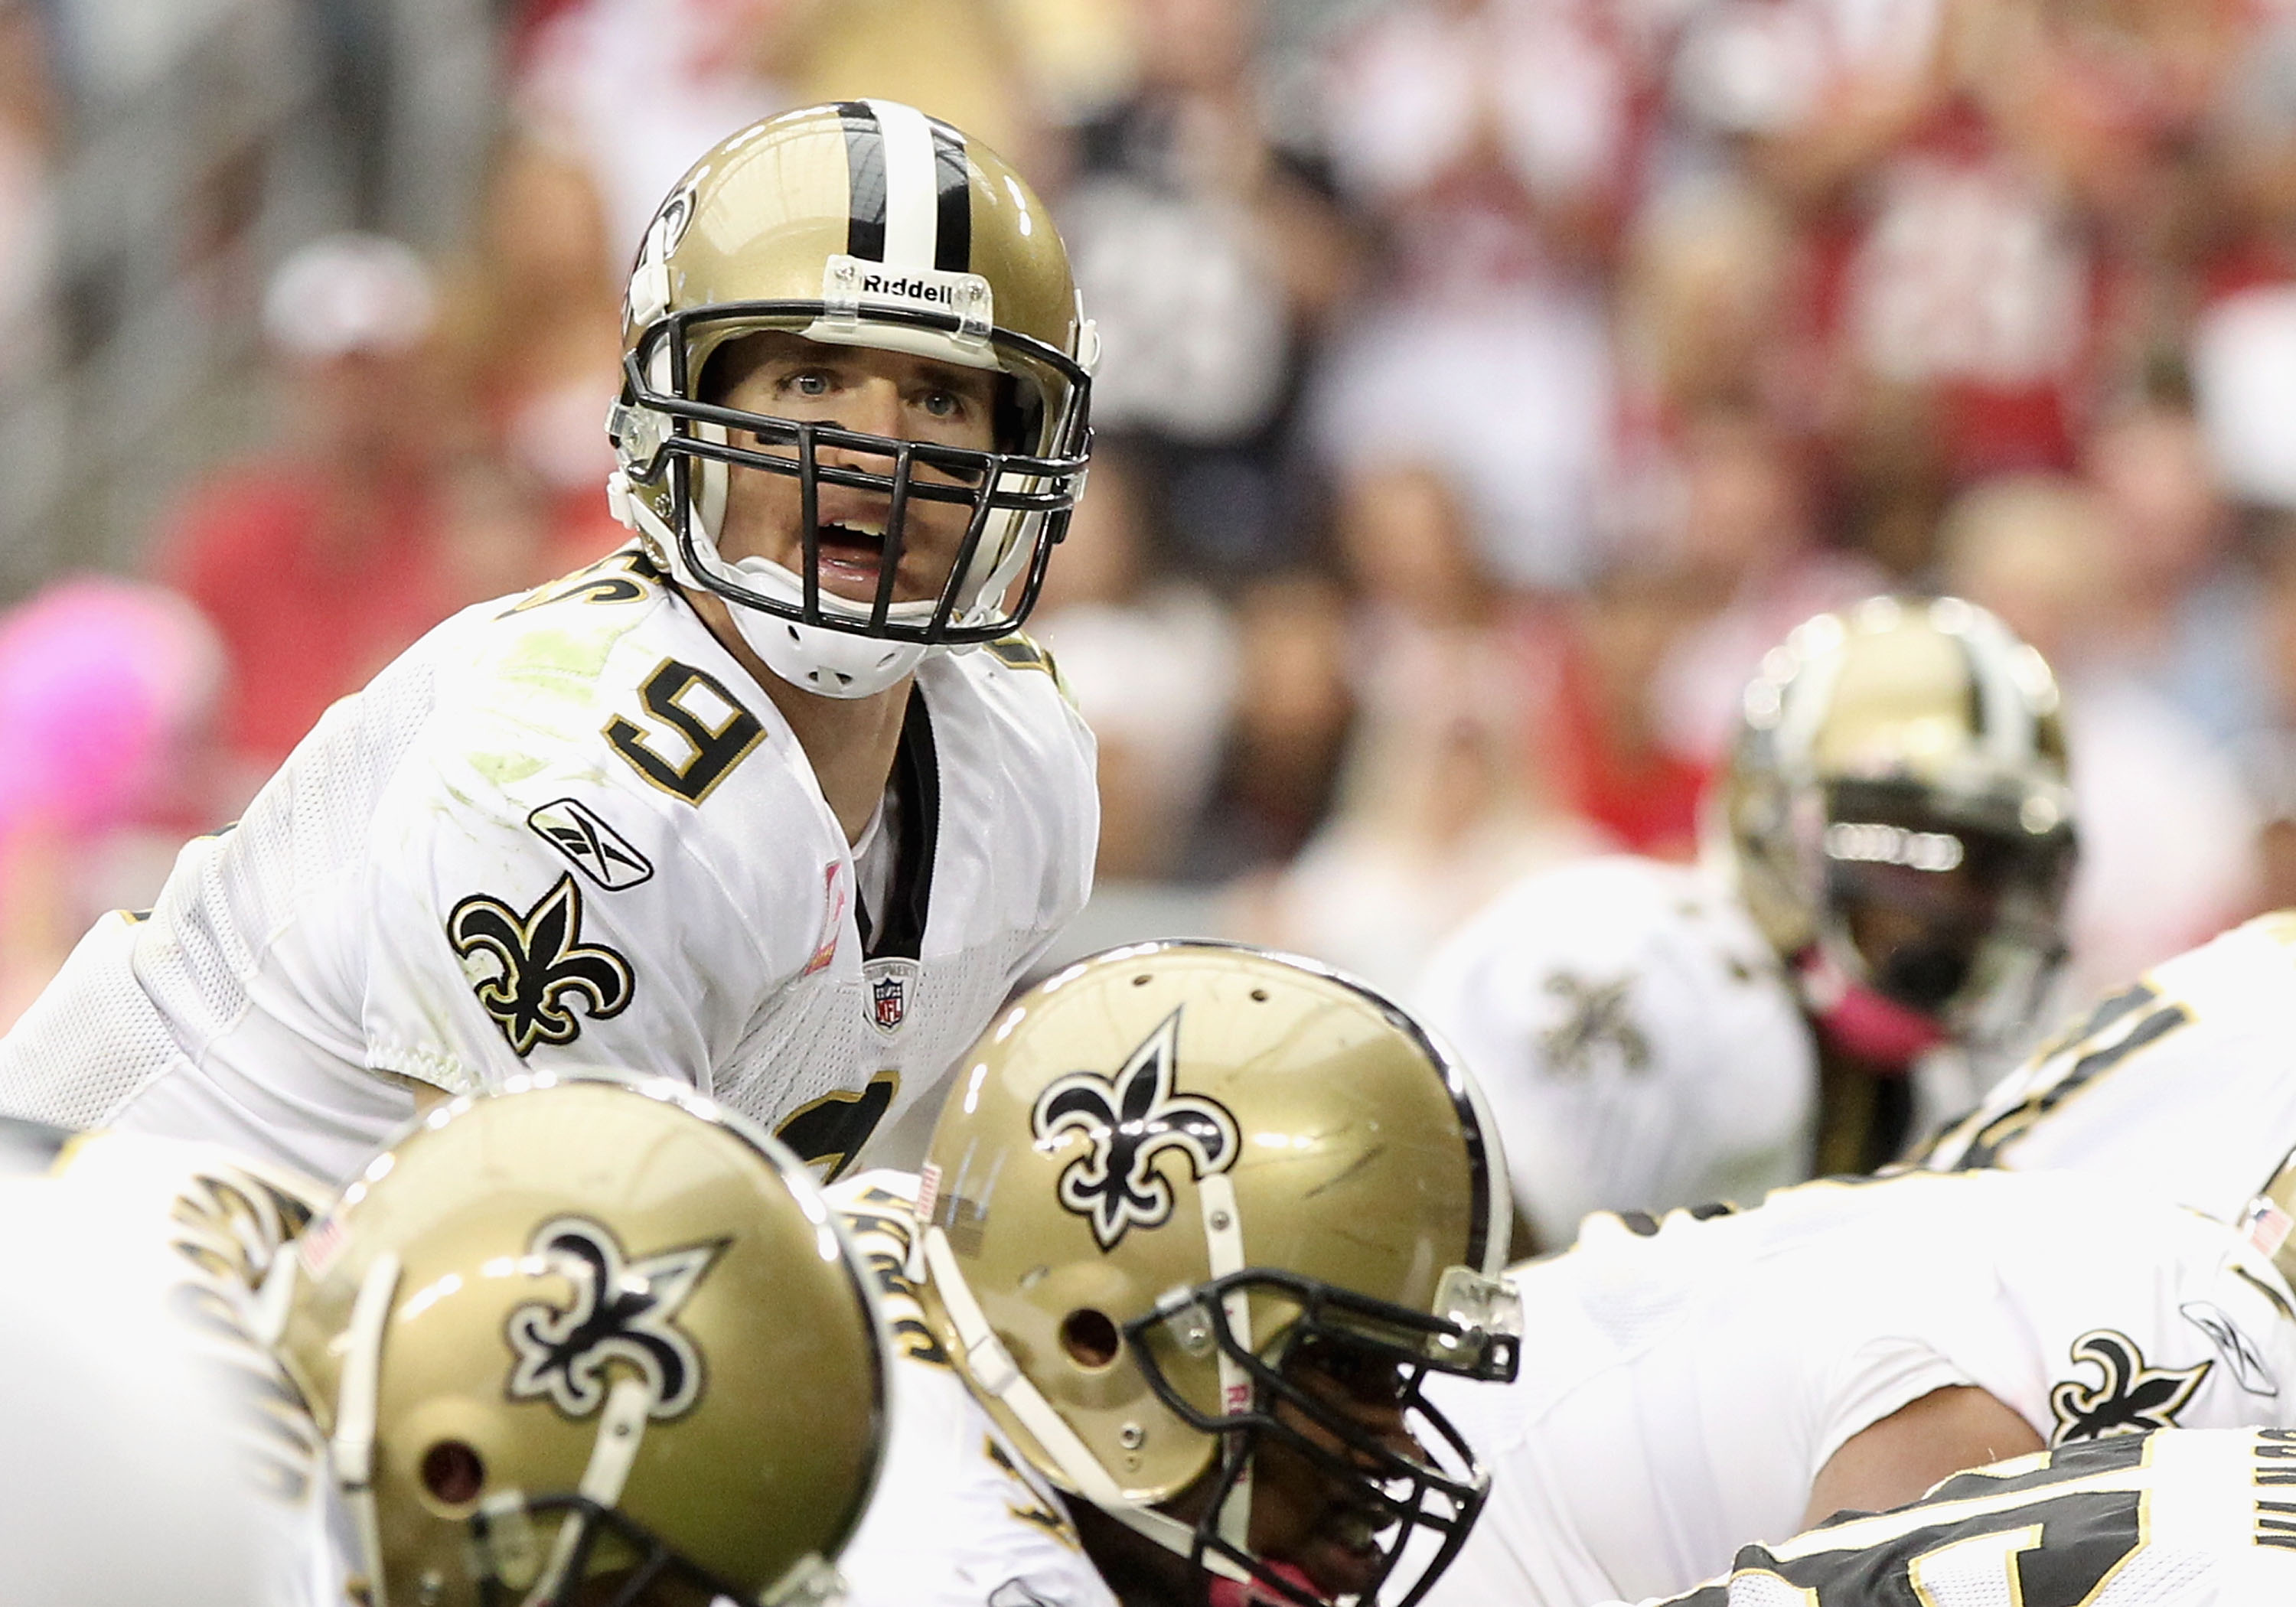 GLENDALE, AZ - OCTOBER 10:  Quarterback Drew Brees #9 of the New Orleans Saints prepares to snap the ball during the NFL game against the Arizona Cardinals at the University of Phoenix Stadium on October 10, 2010 in Glendale, Arizona. The Cardinals defeat